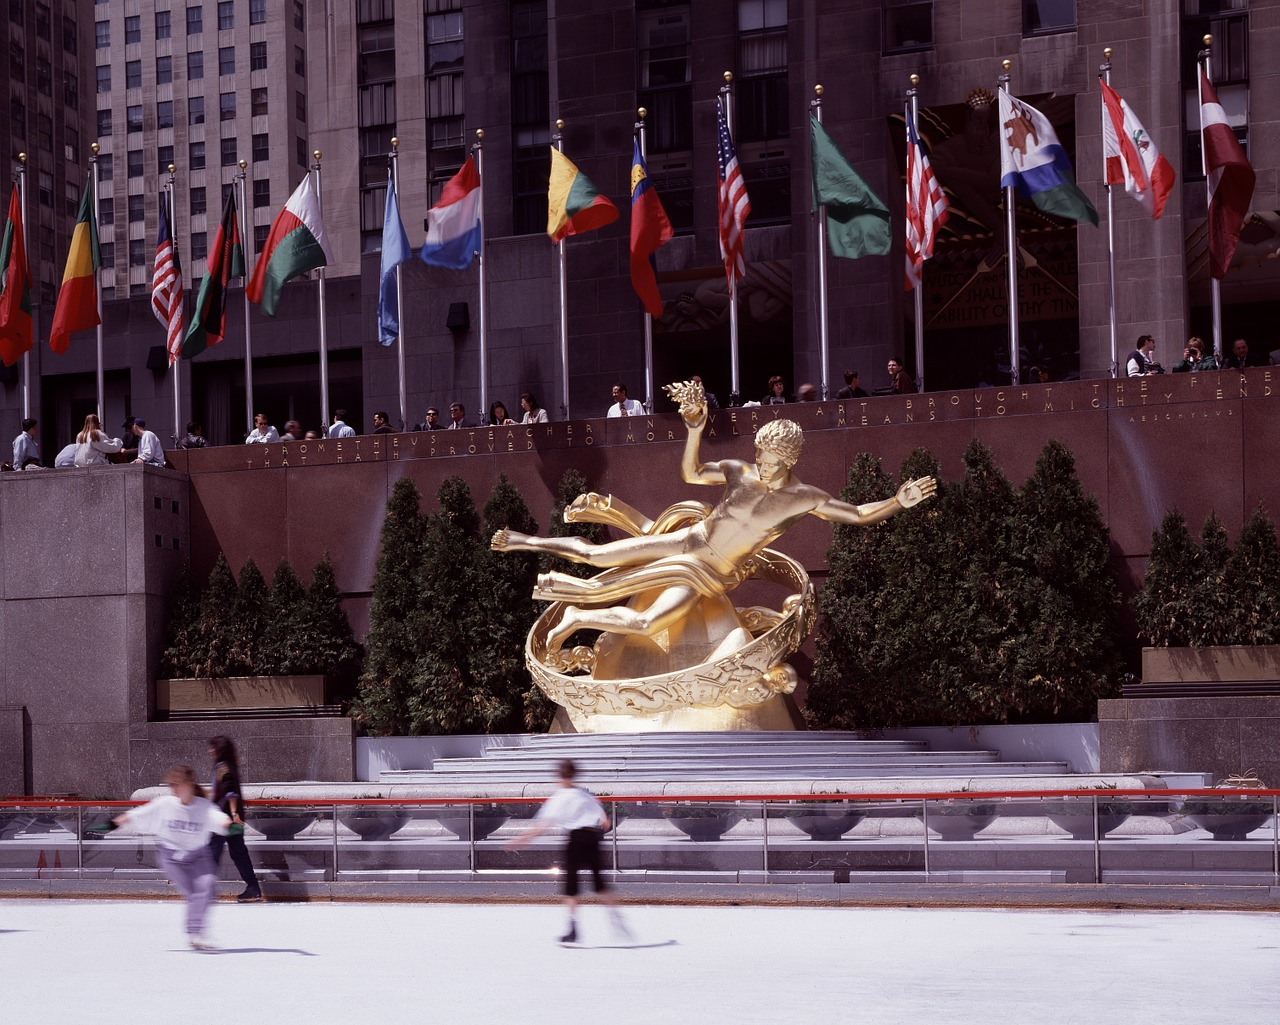 rockefeller center 3 day itinerary for NYC with kids